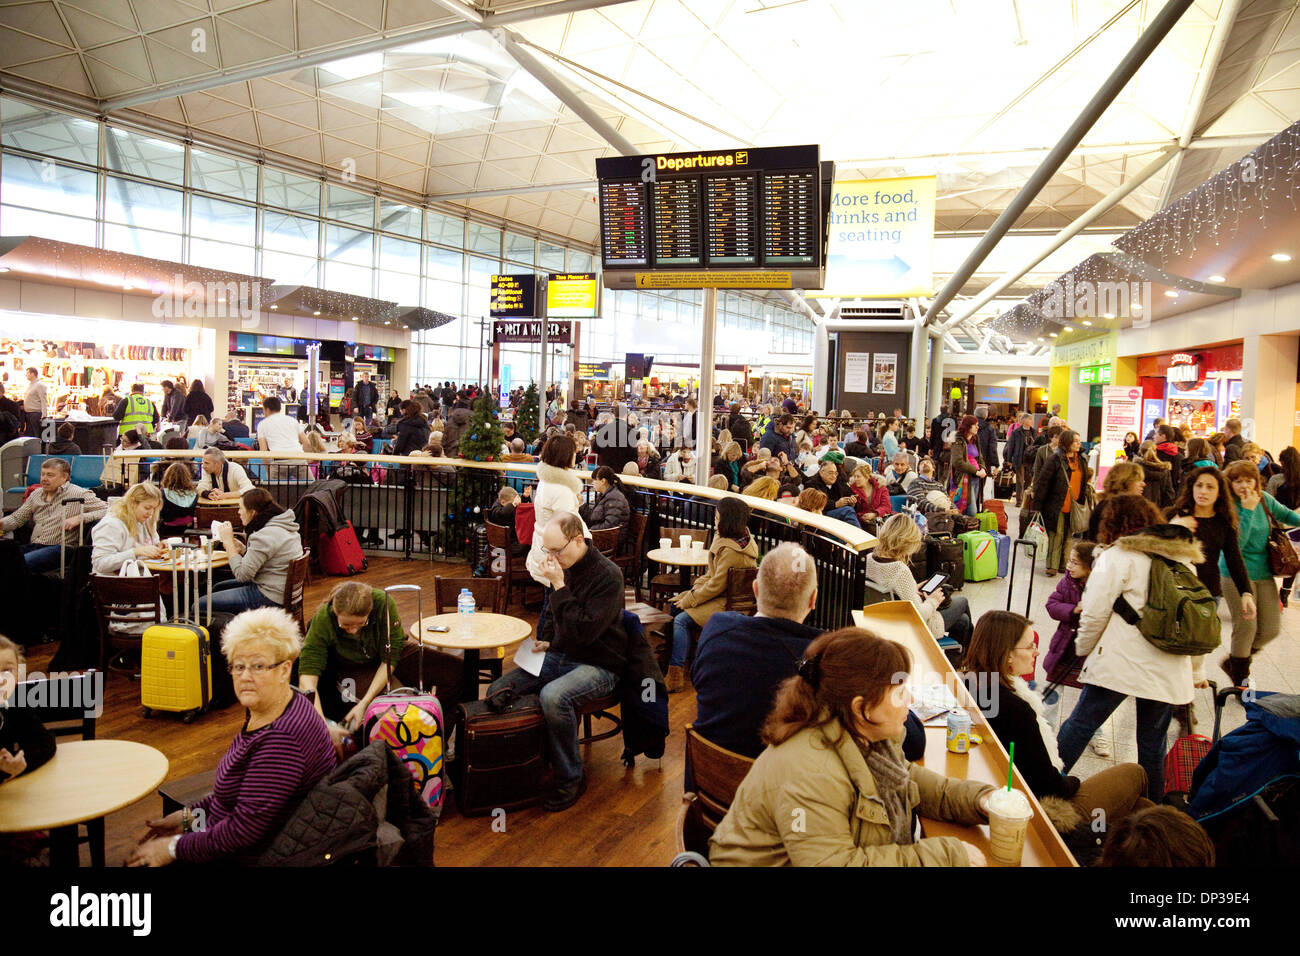 Stansted airport departure lounge; crowded with people travelling; Essex, England UK - Stock Image